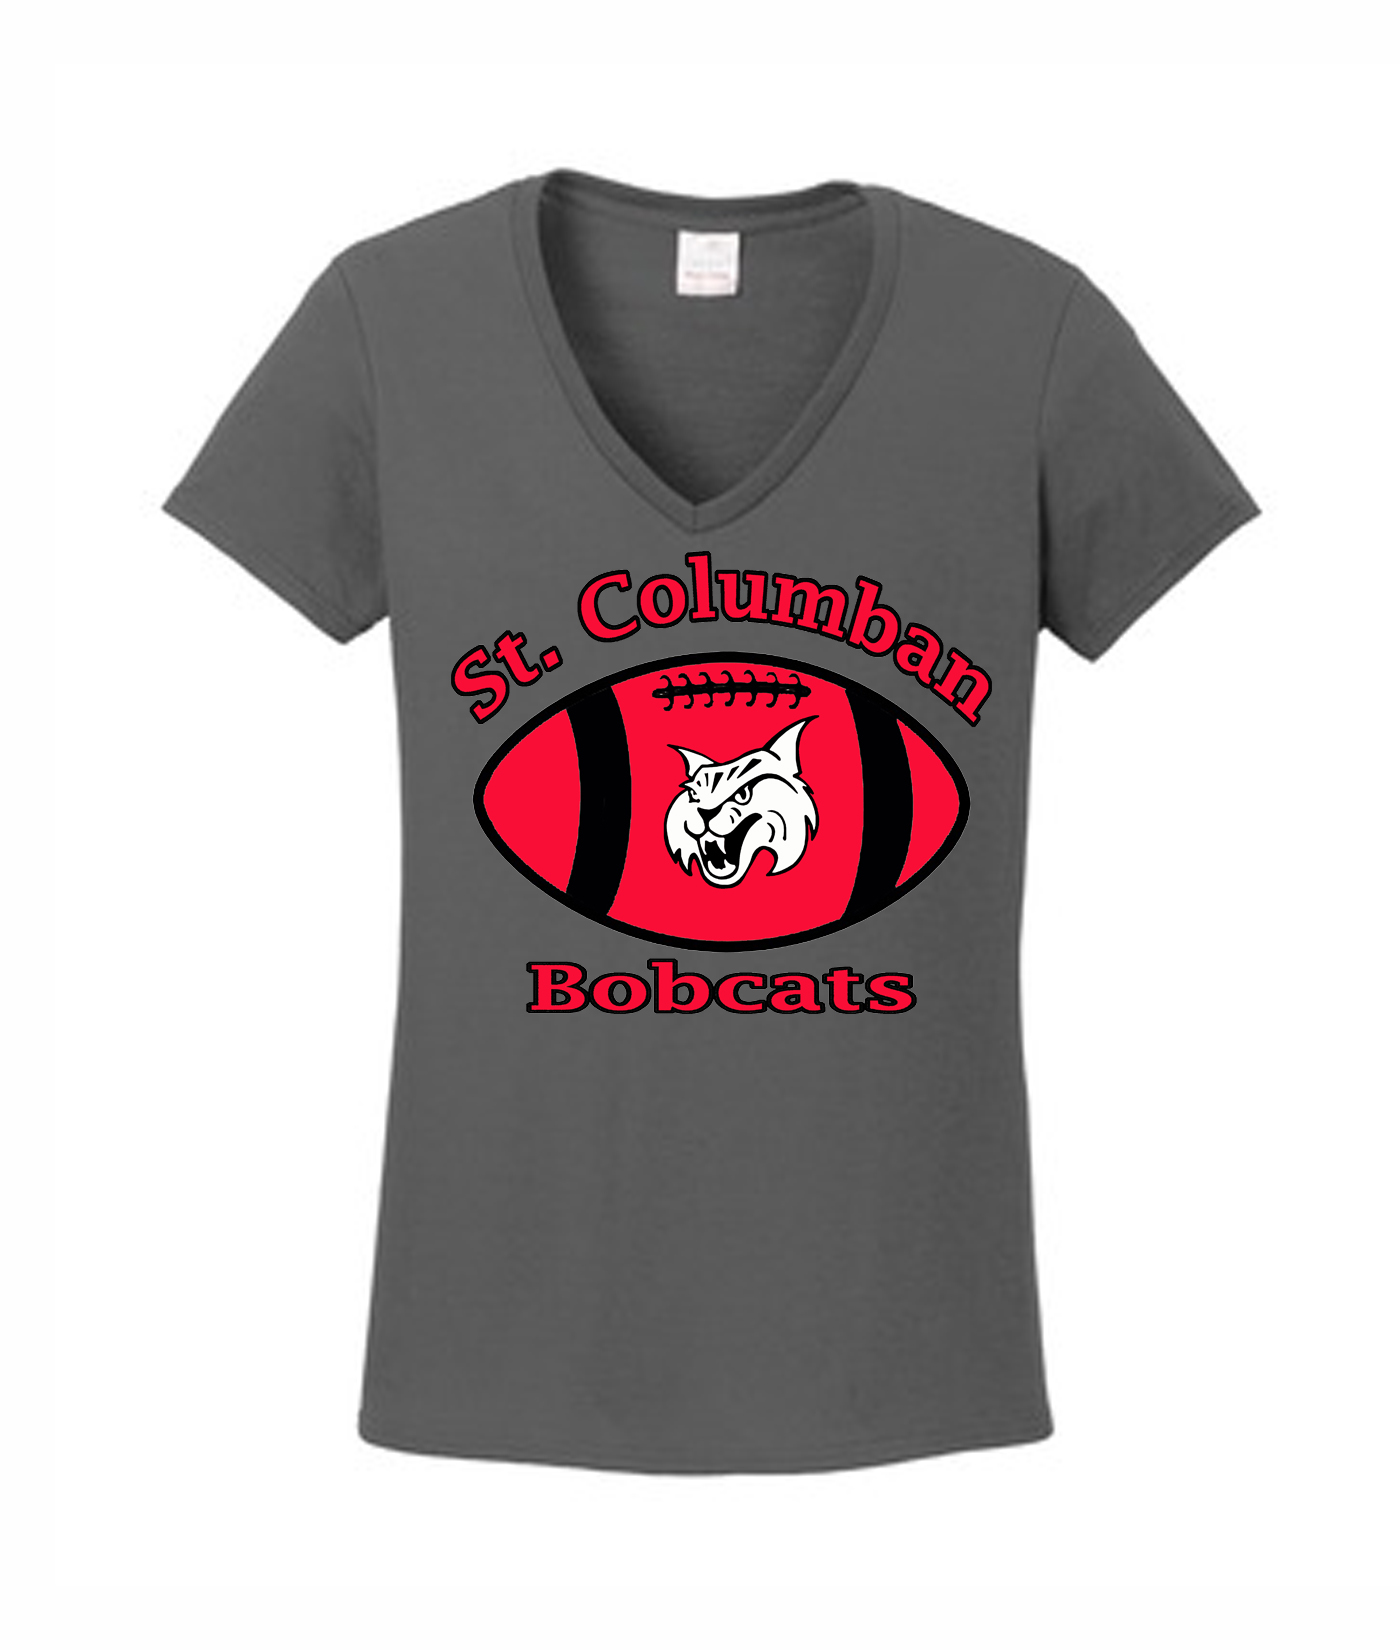 St. Columban Bobcats Ladies Grey V-Neck Football Bobcat